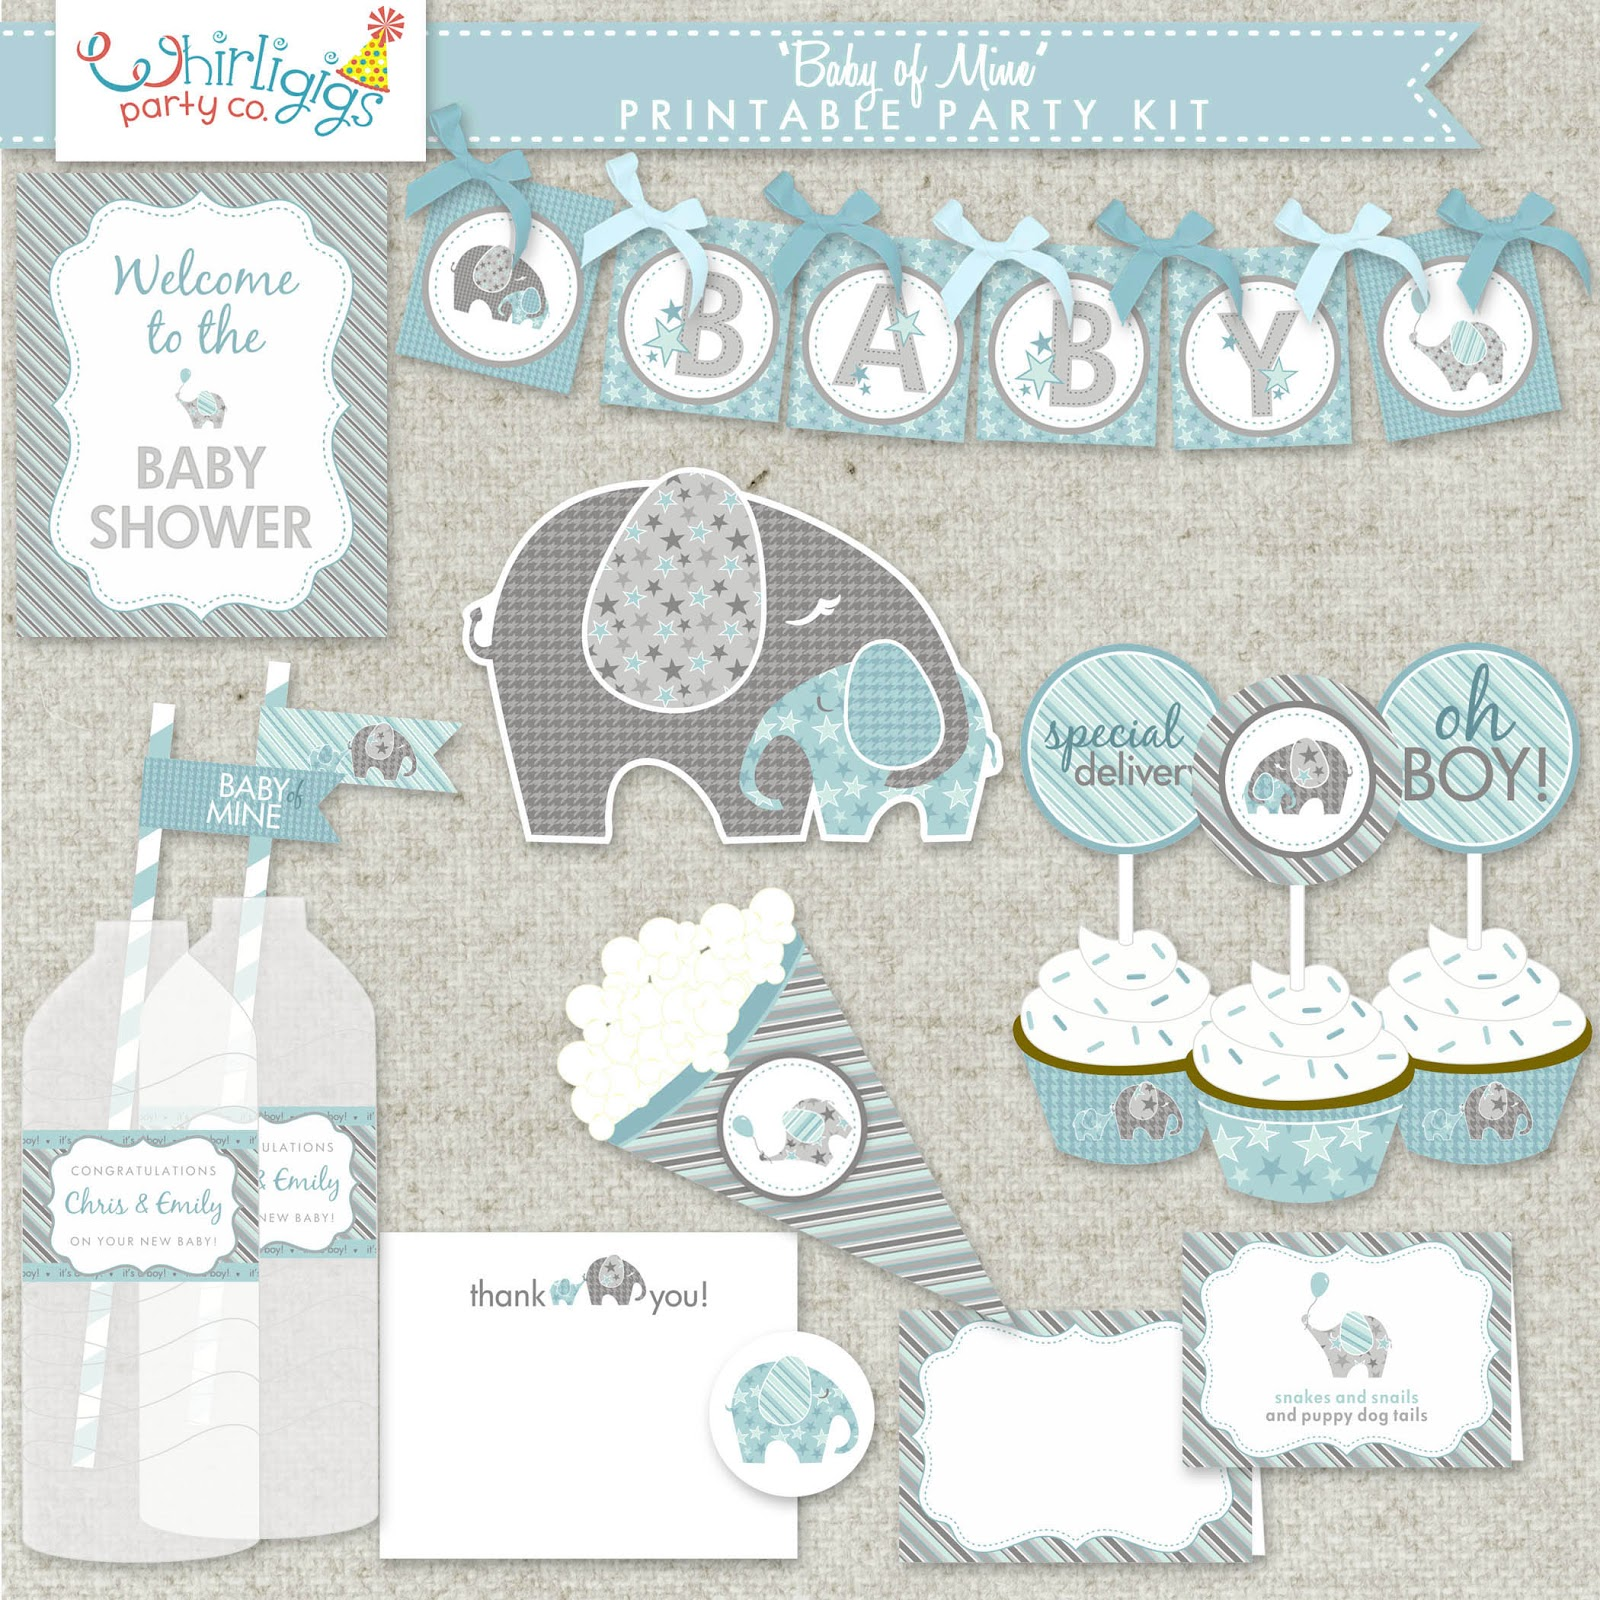 Whirligigs party co elephant baby shower for Baby shower decoration templates